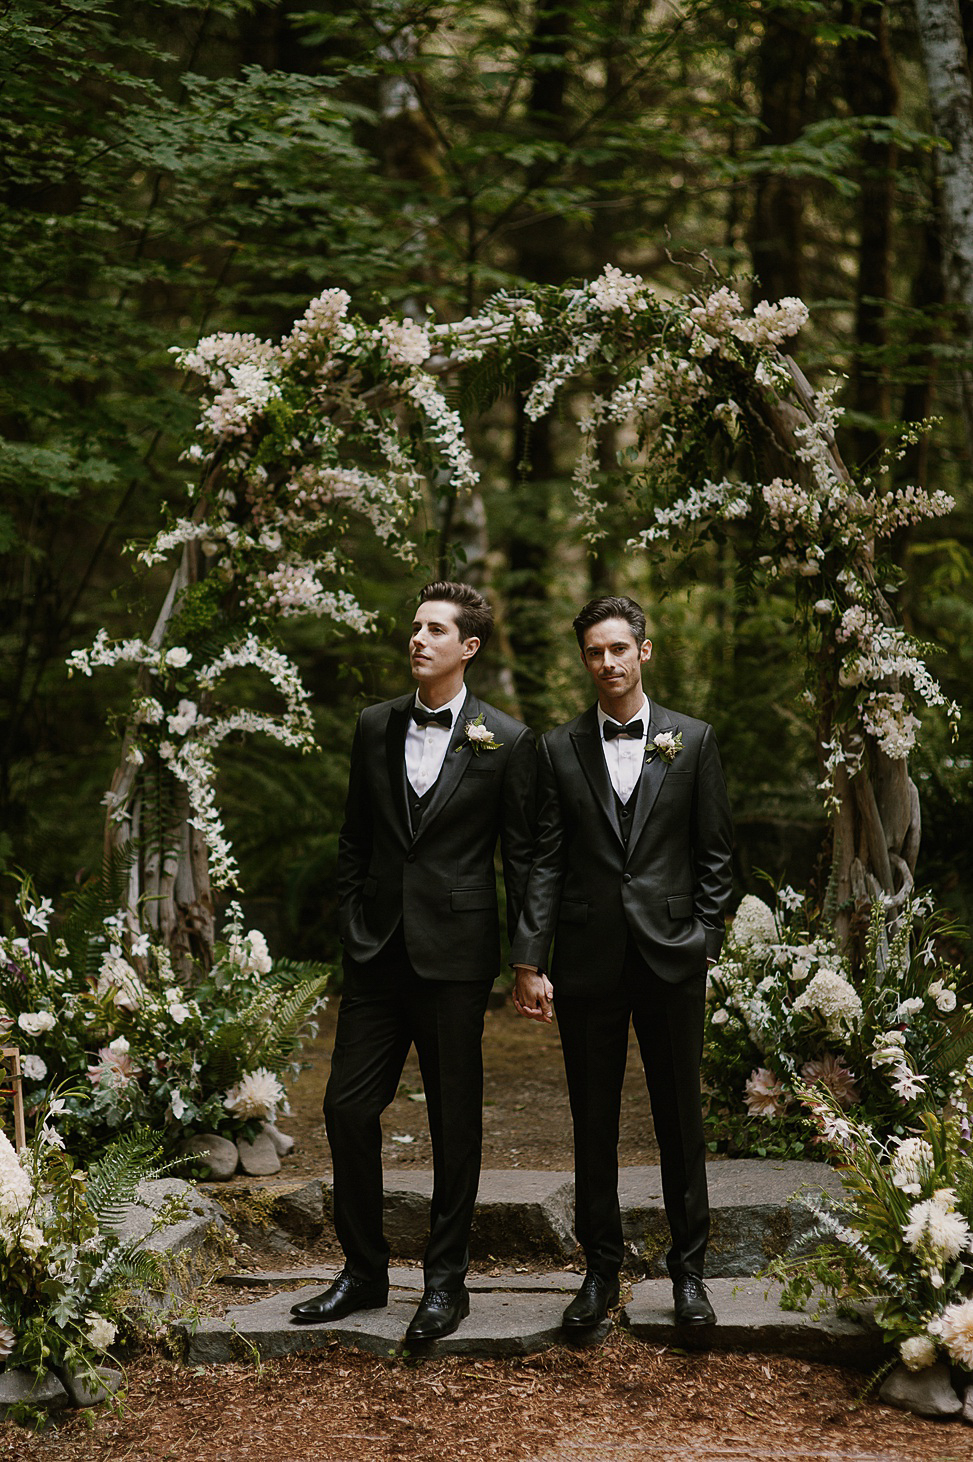 The wedding arch was made of driftwood and decorated with lush white blooms and greenery